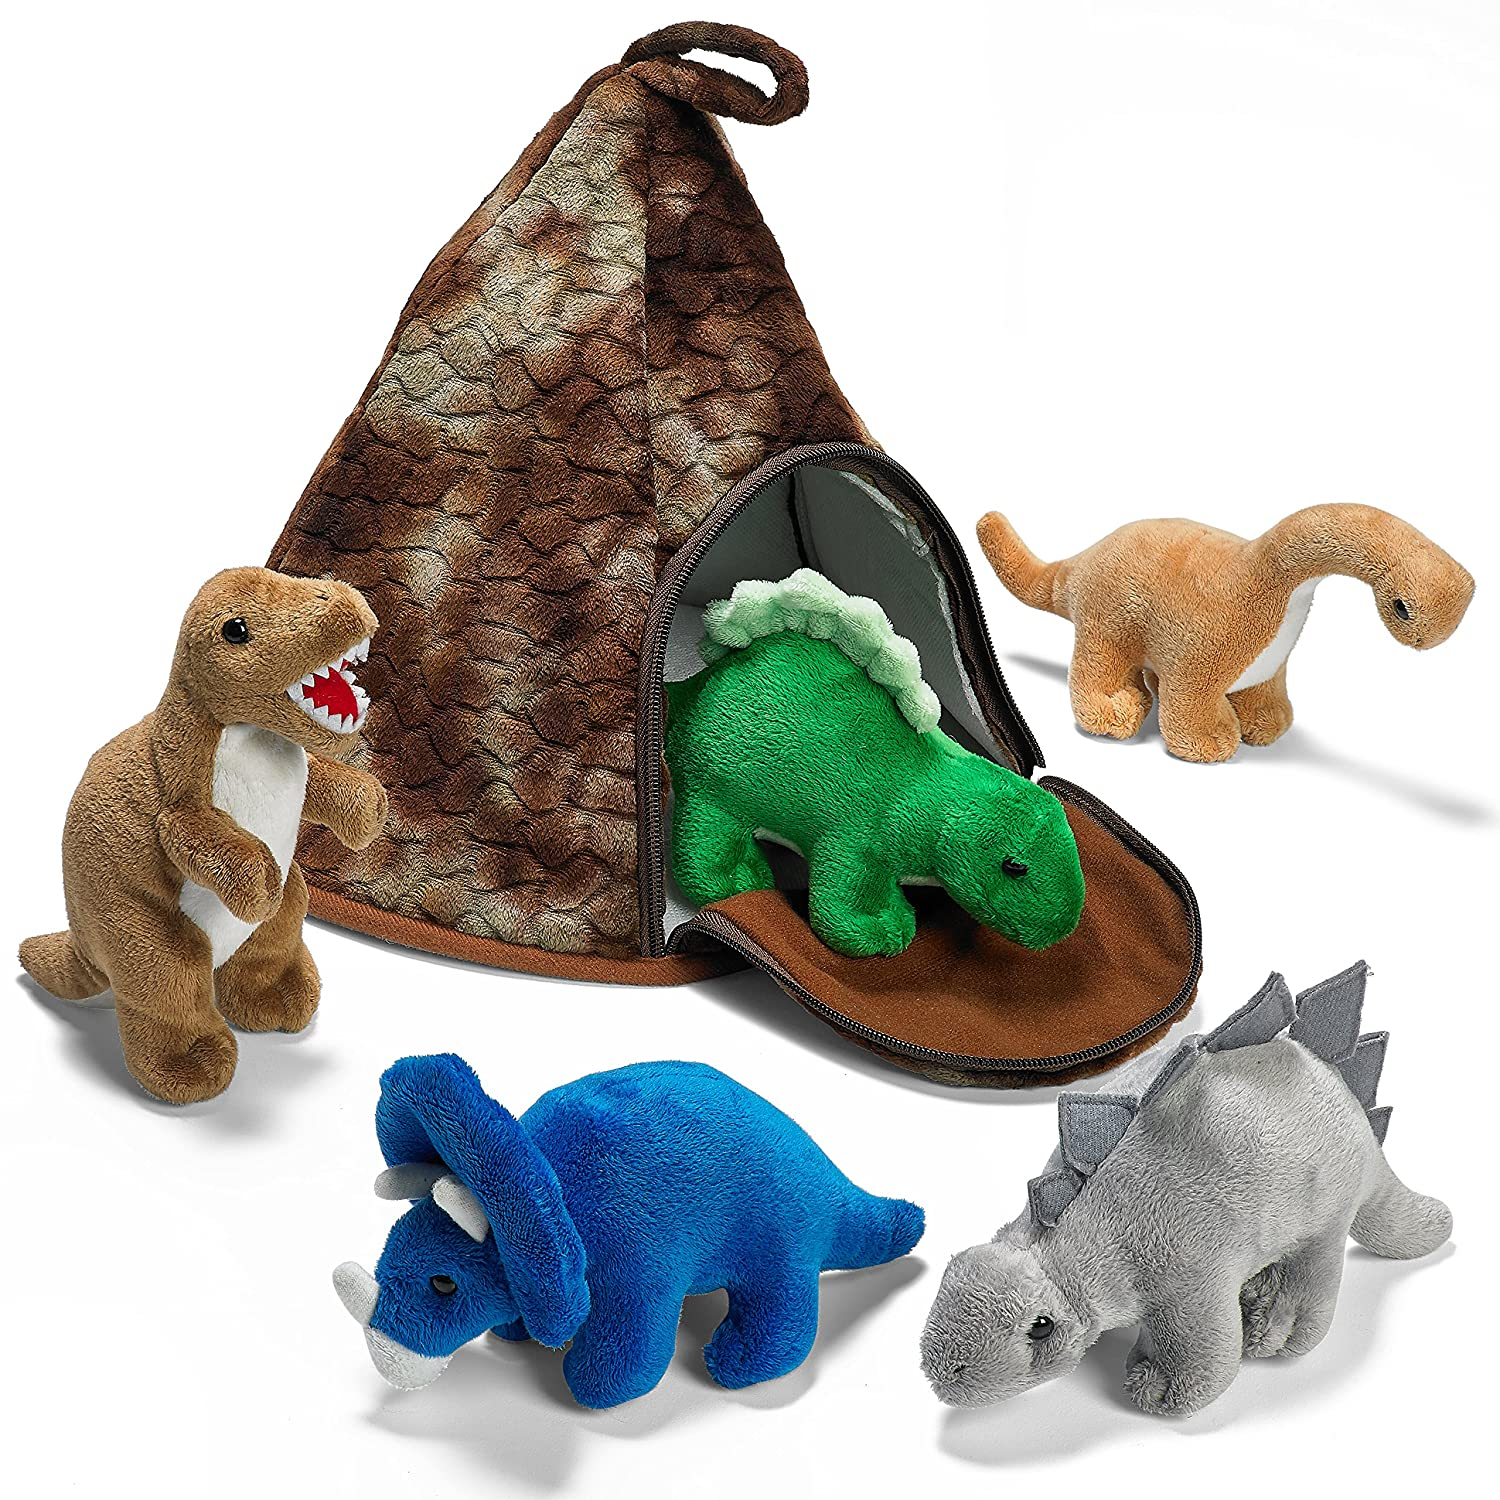 amazon com prextex dinosaur volcano house with 5 plush dinosaurs